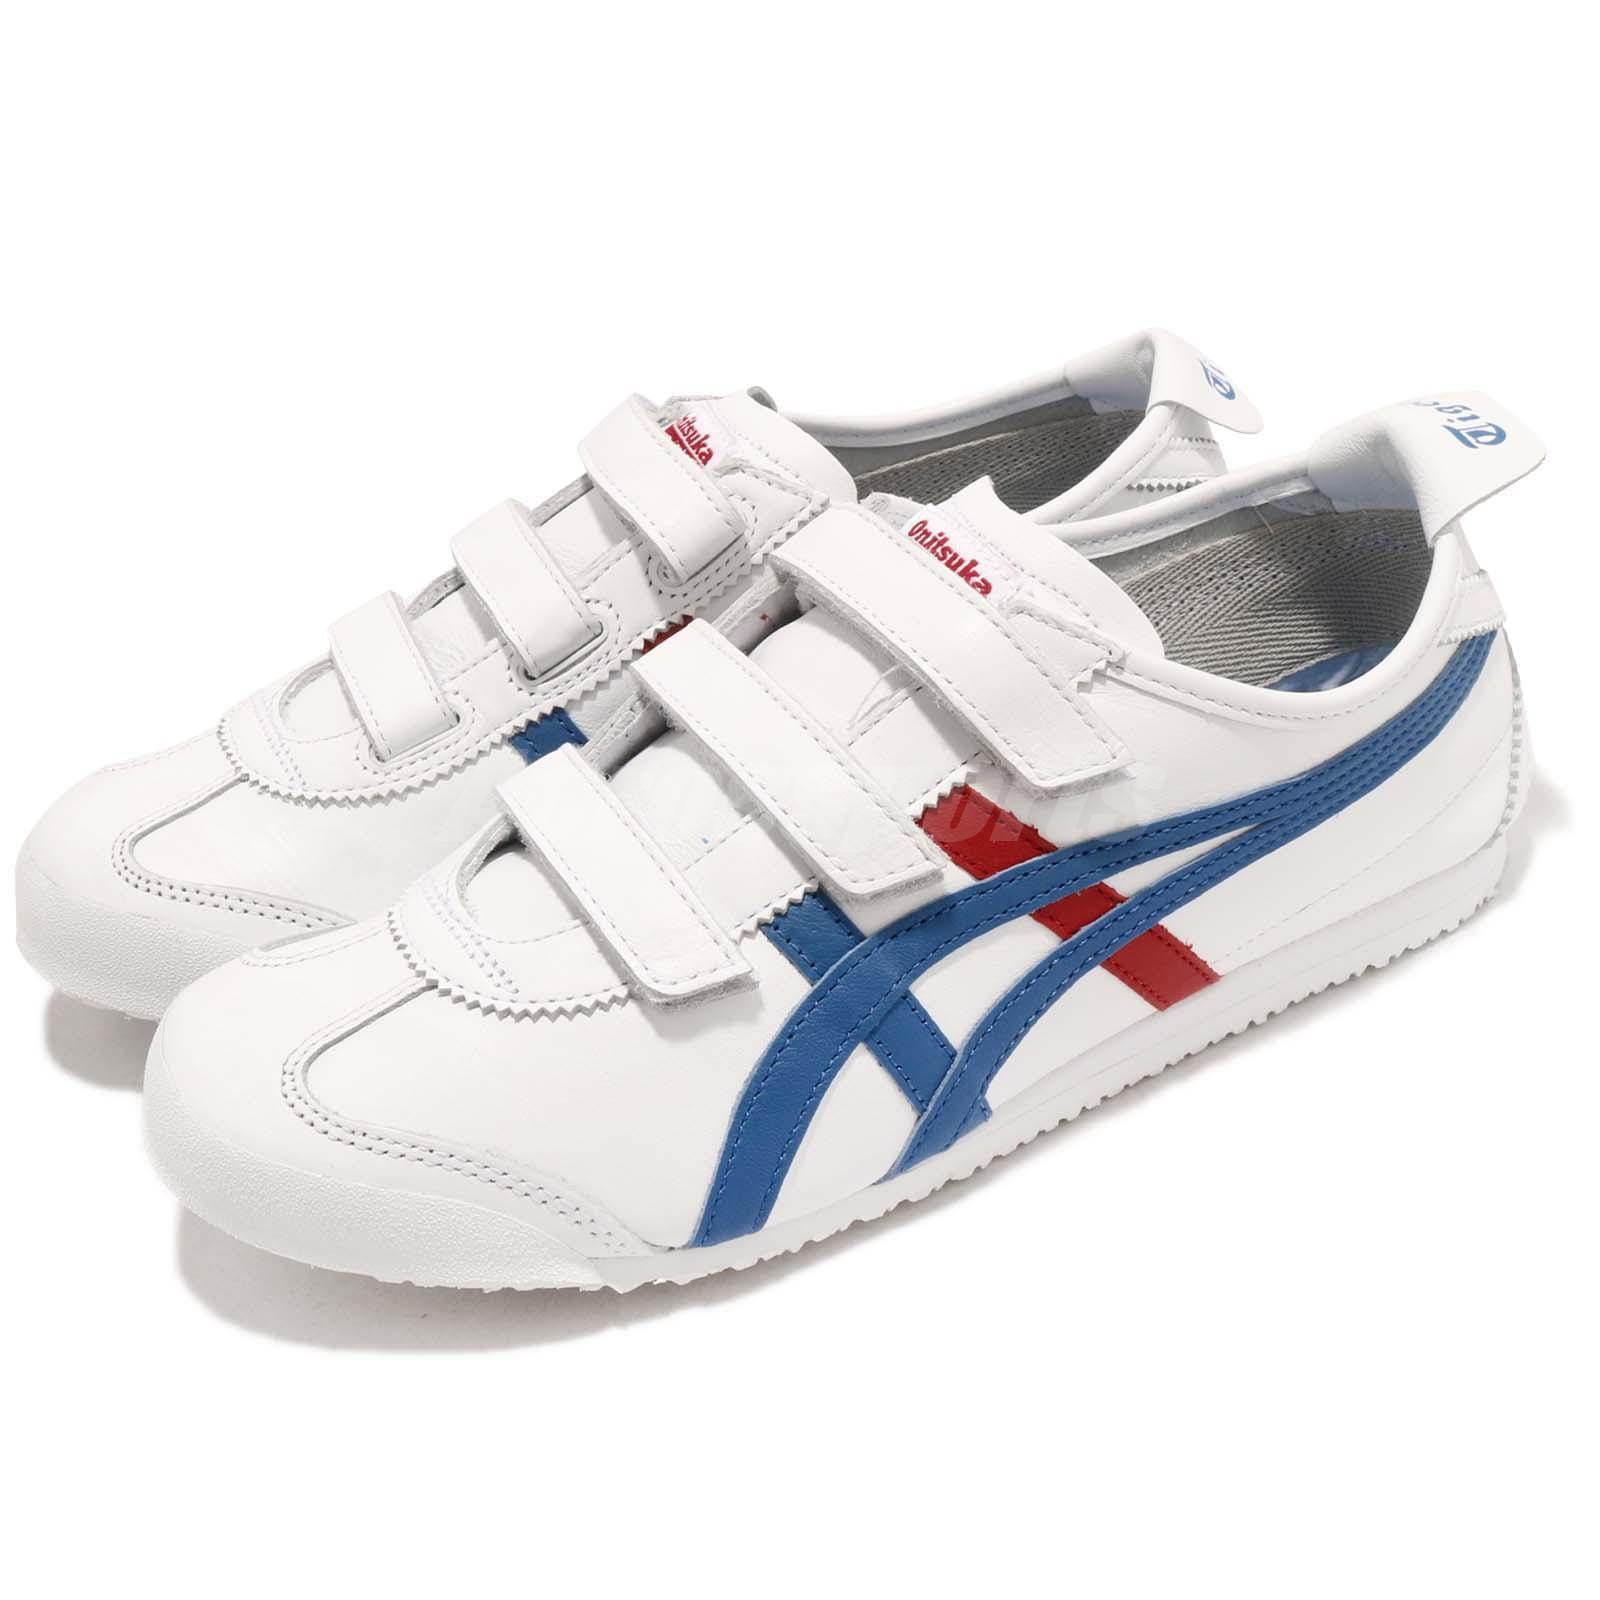 Asics Onitsuka Tiger Mexico 66 Baja White bluee Red Men Casual shoes HK4A1-0142